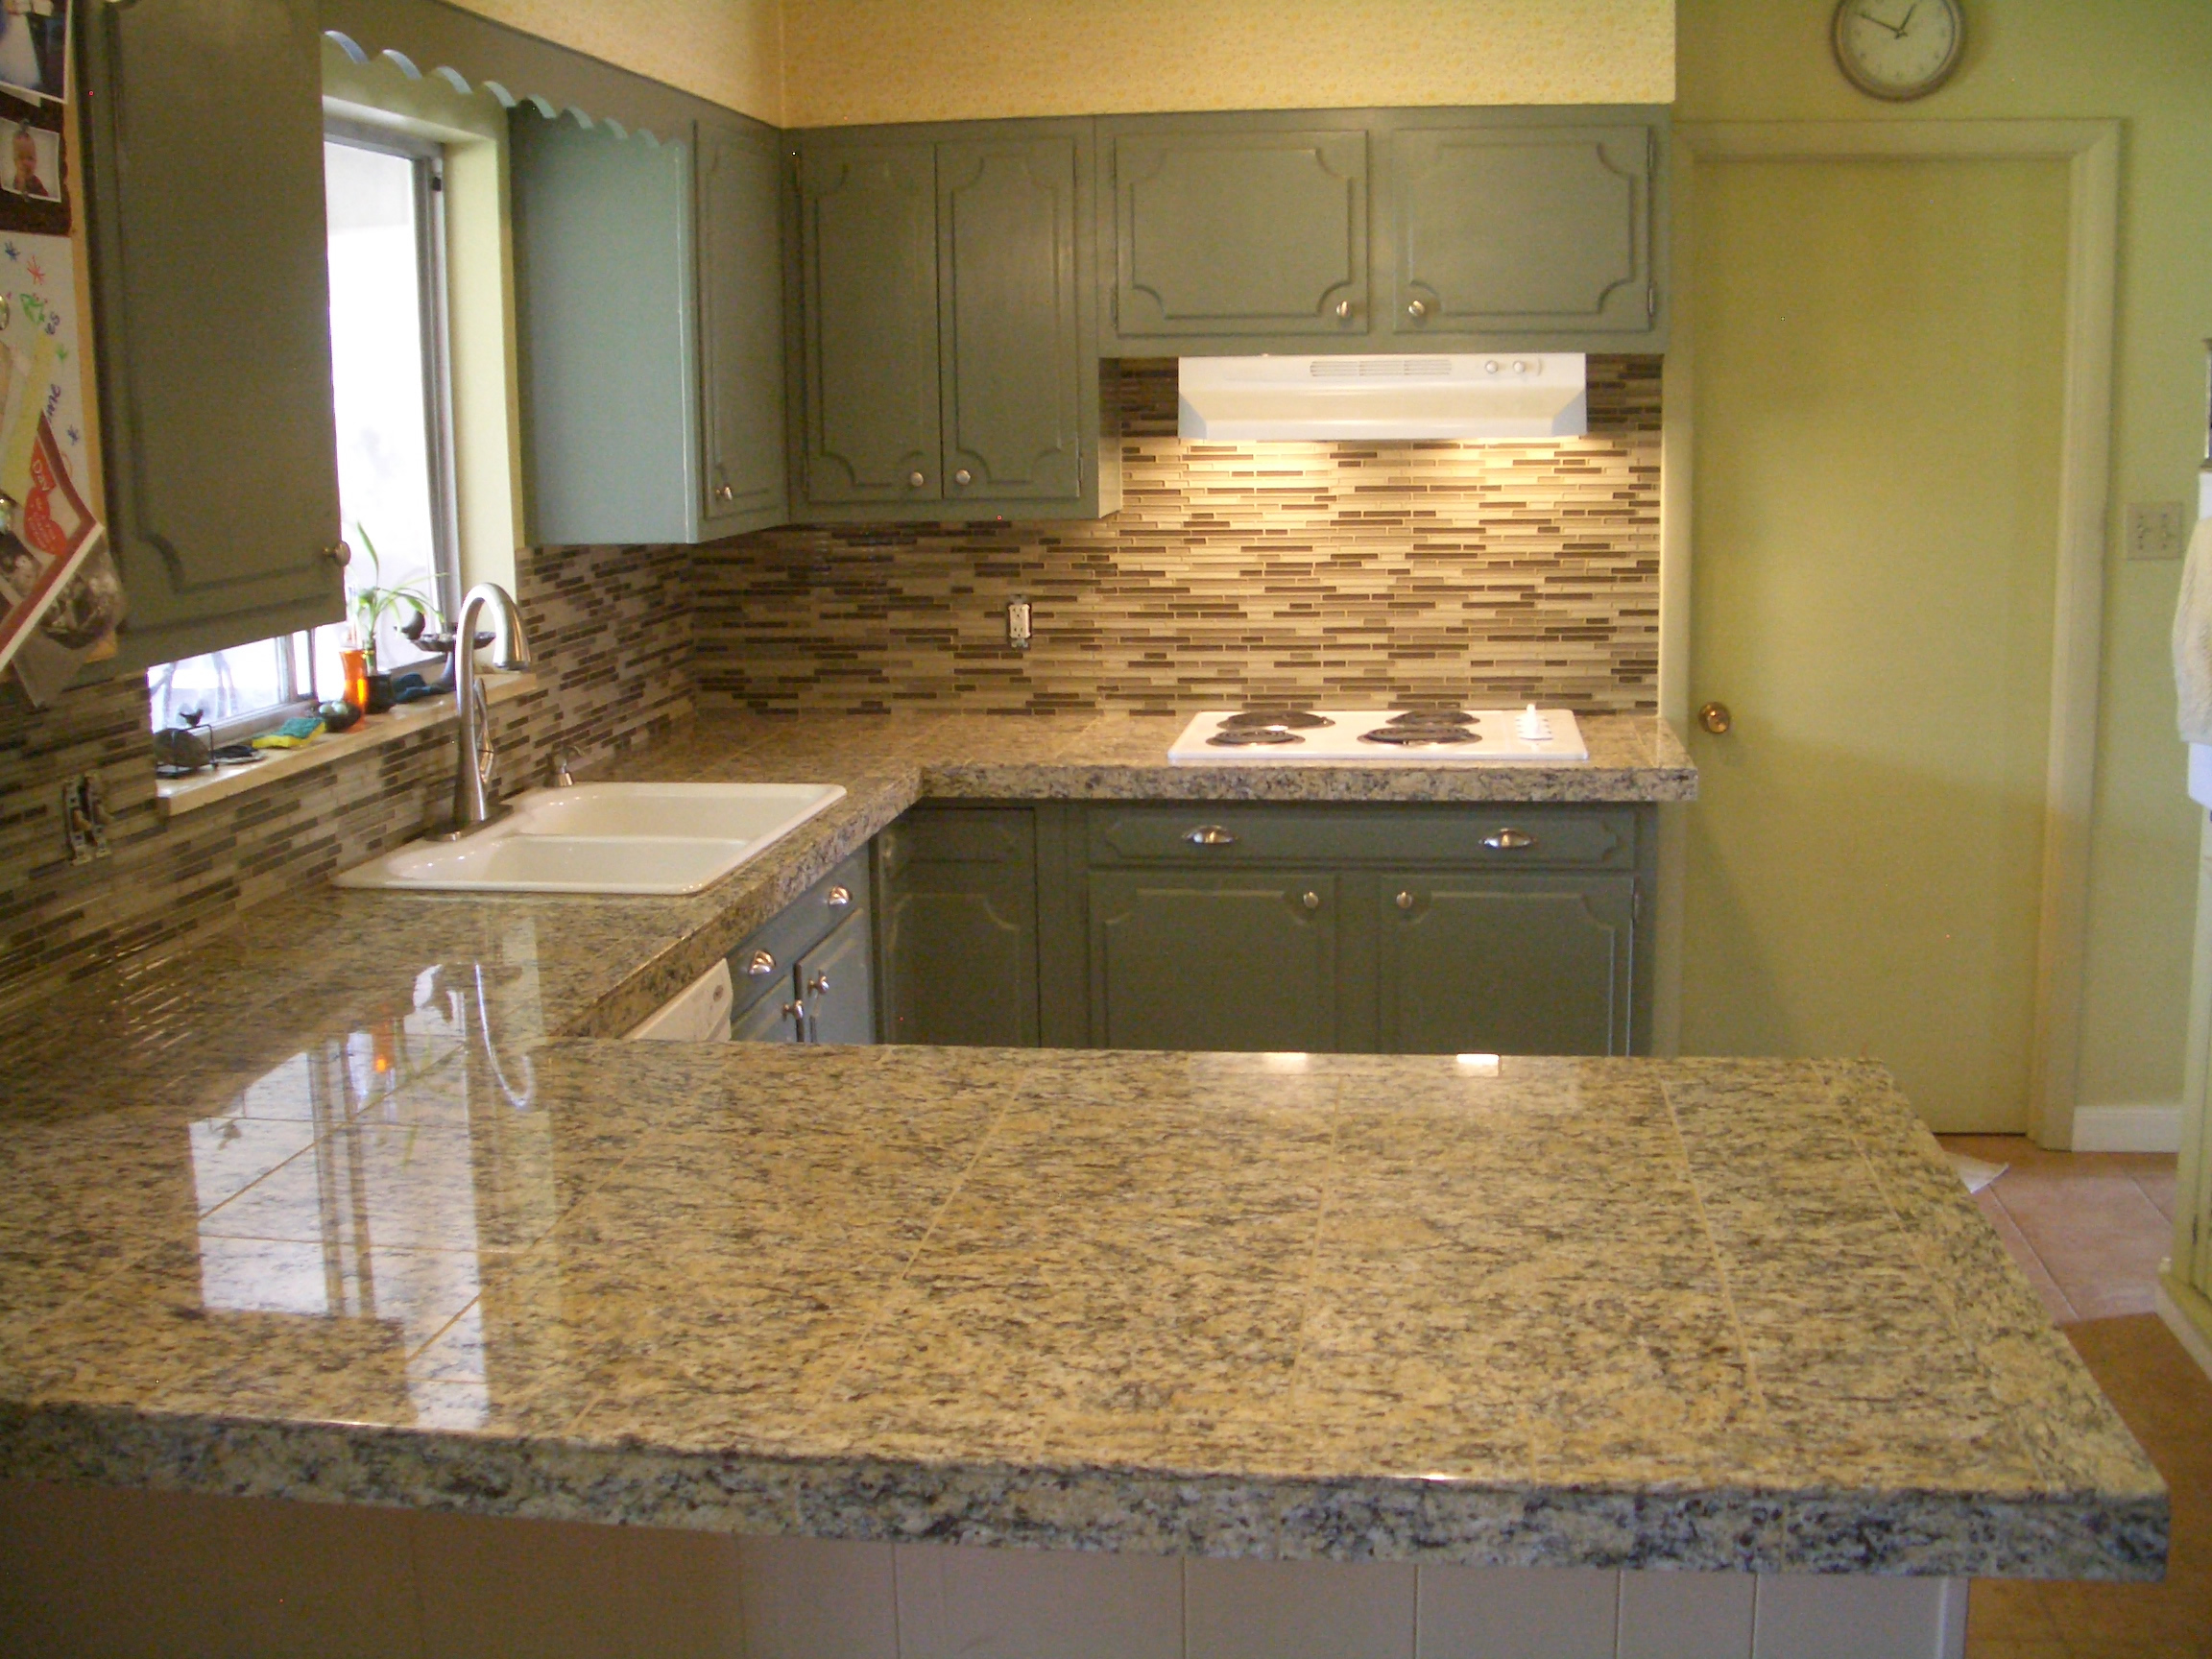 Glass tile kitchen backsplash special only 899 Tan kitchen backsplash